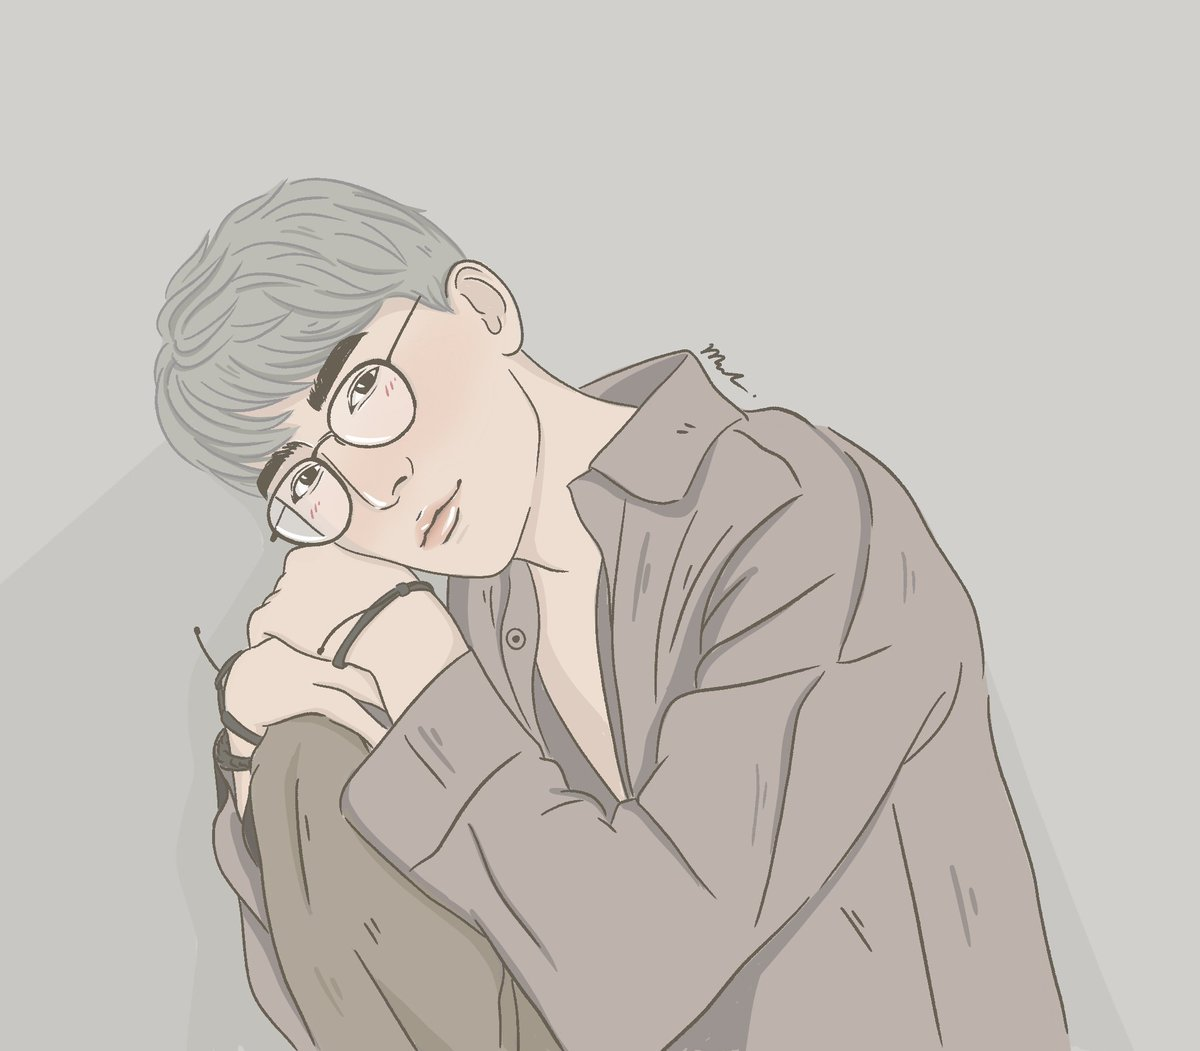 Replying to @mikml_: 🤓🤓  #MewSuppasit #MewingGulfy  #mikmlxfanart